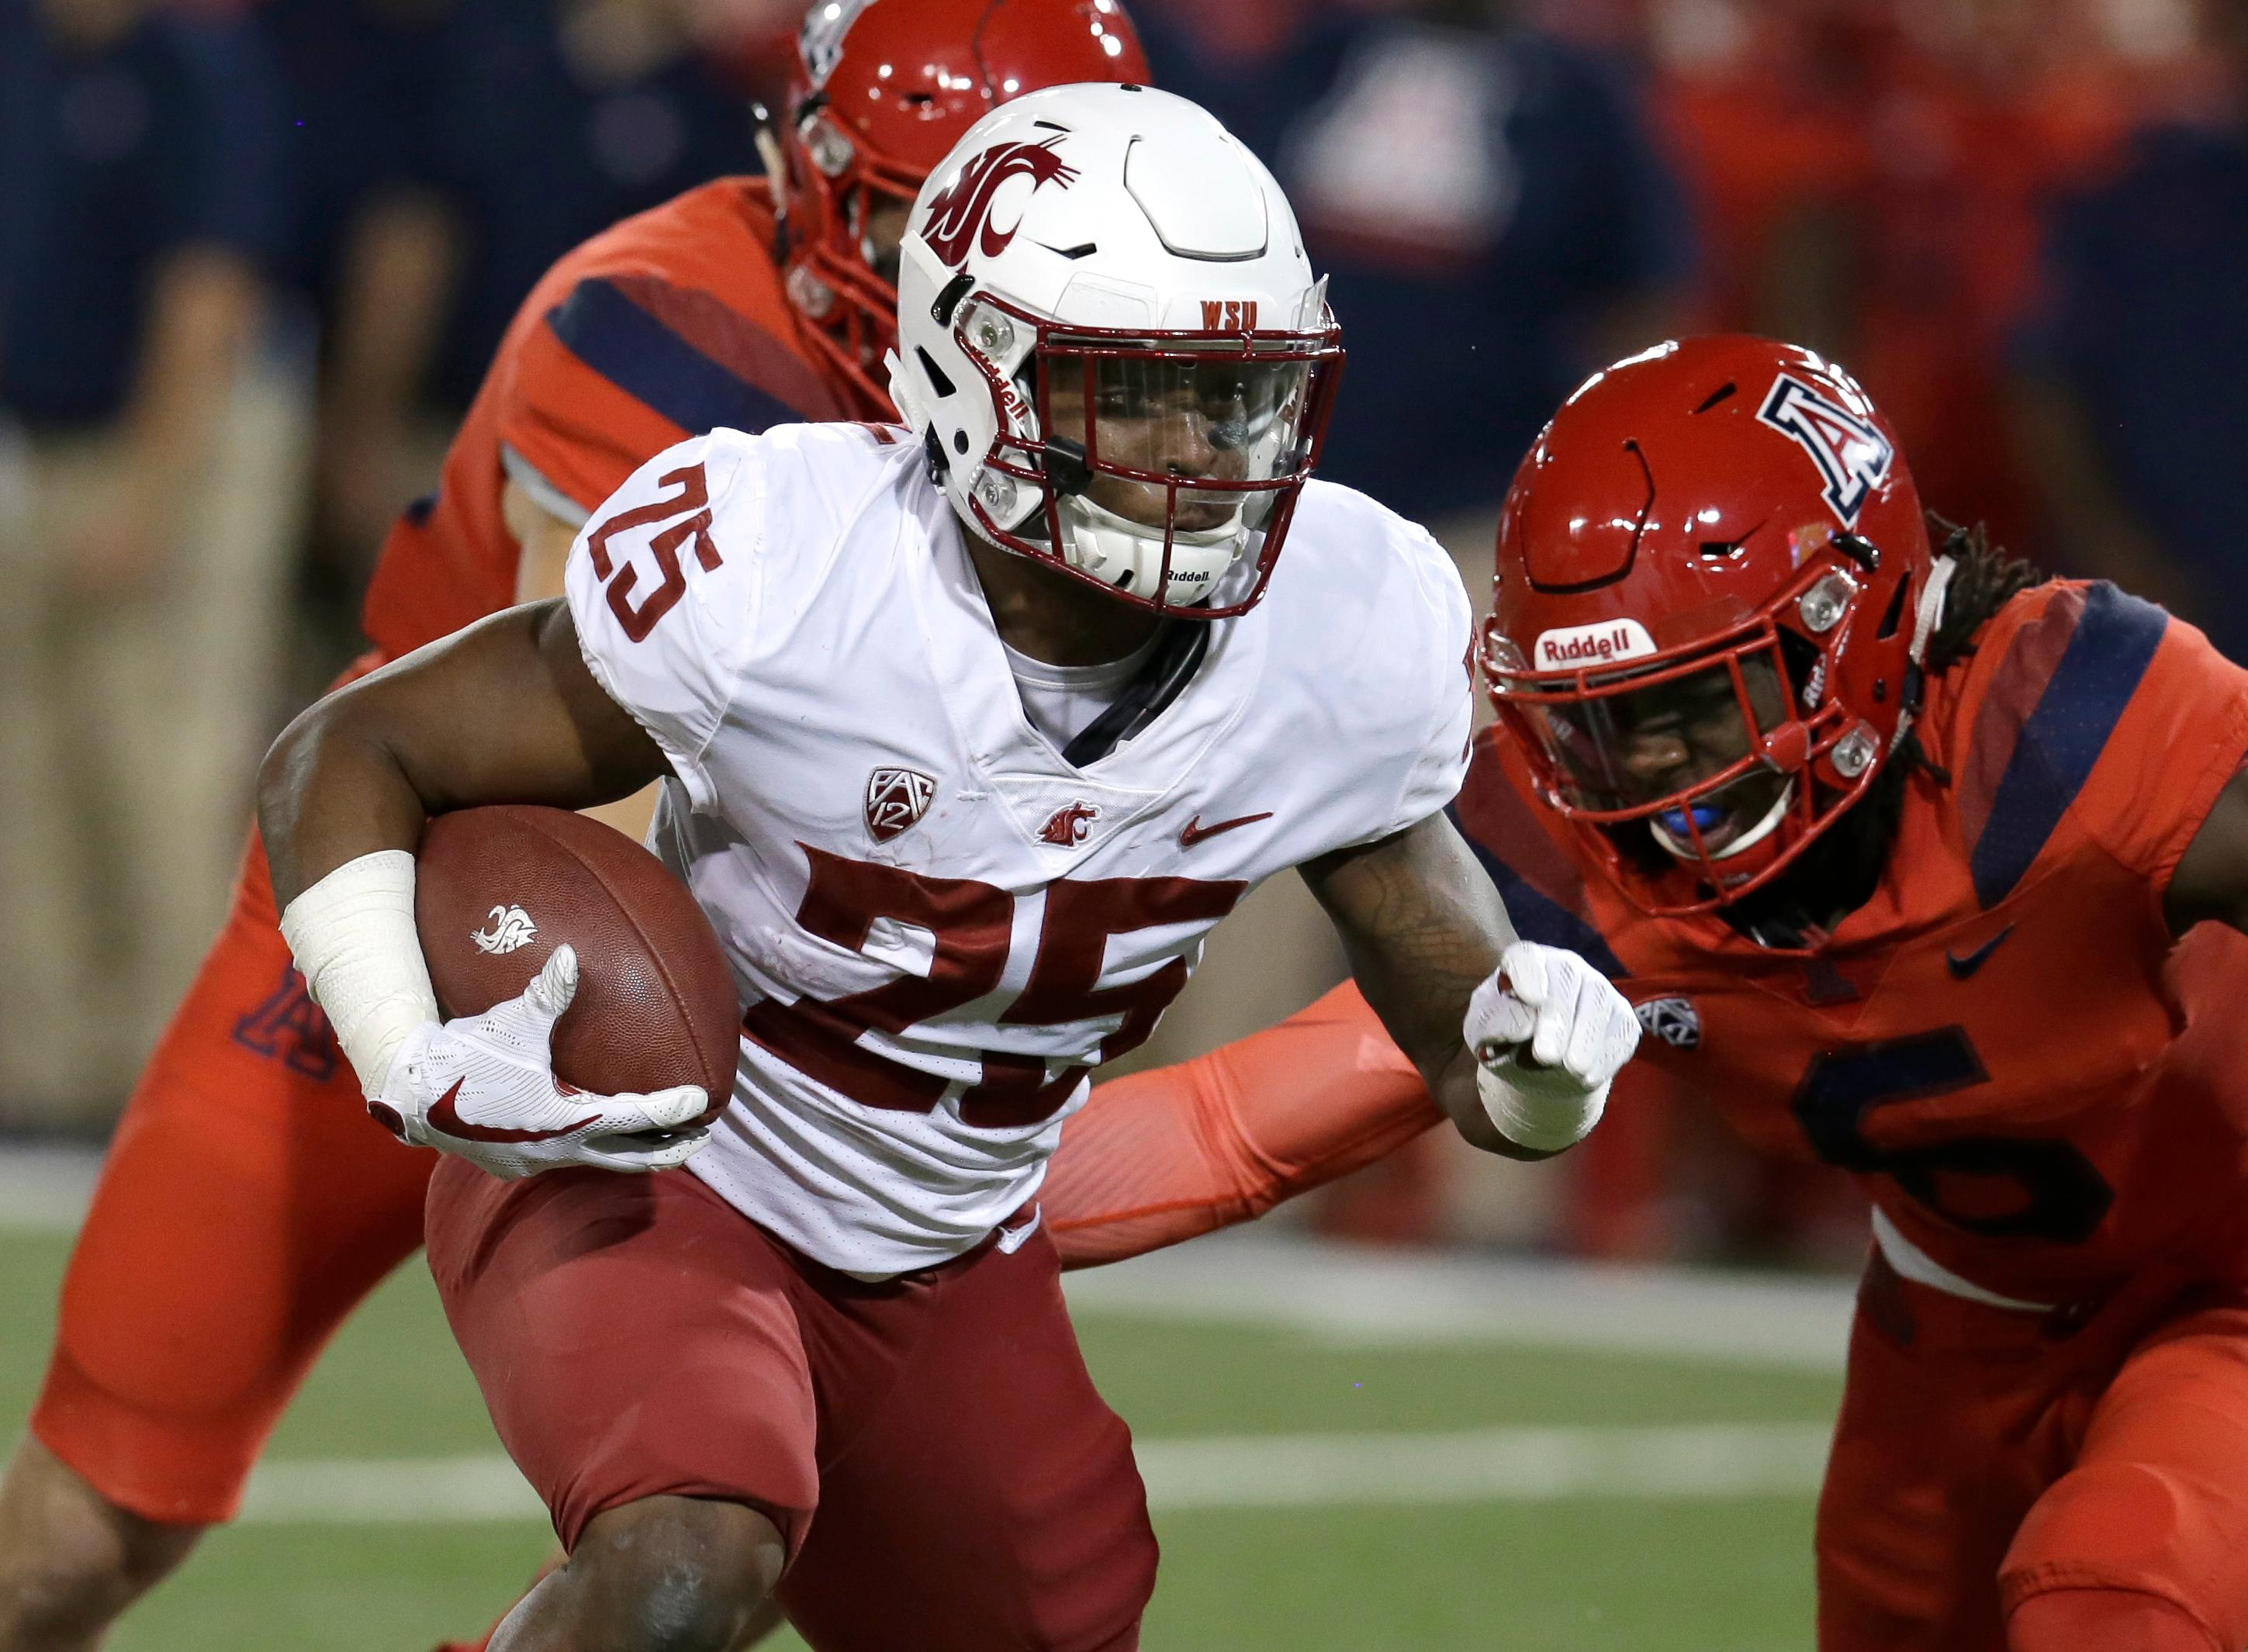 Washington State running back Jamal Morrow (25) runs a way from the tackle of Arizona safety Demetrius Flannigan-Fowles in the first half during an NCAA college football game, Saturday, Oct. 28, 2017, in Tucson, Ariz. (AP Photo/Rick Scuteri)